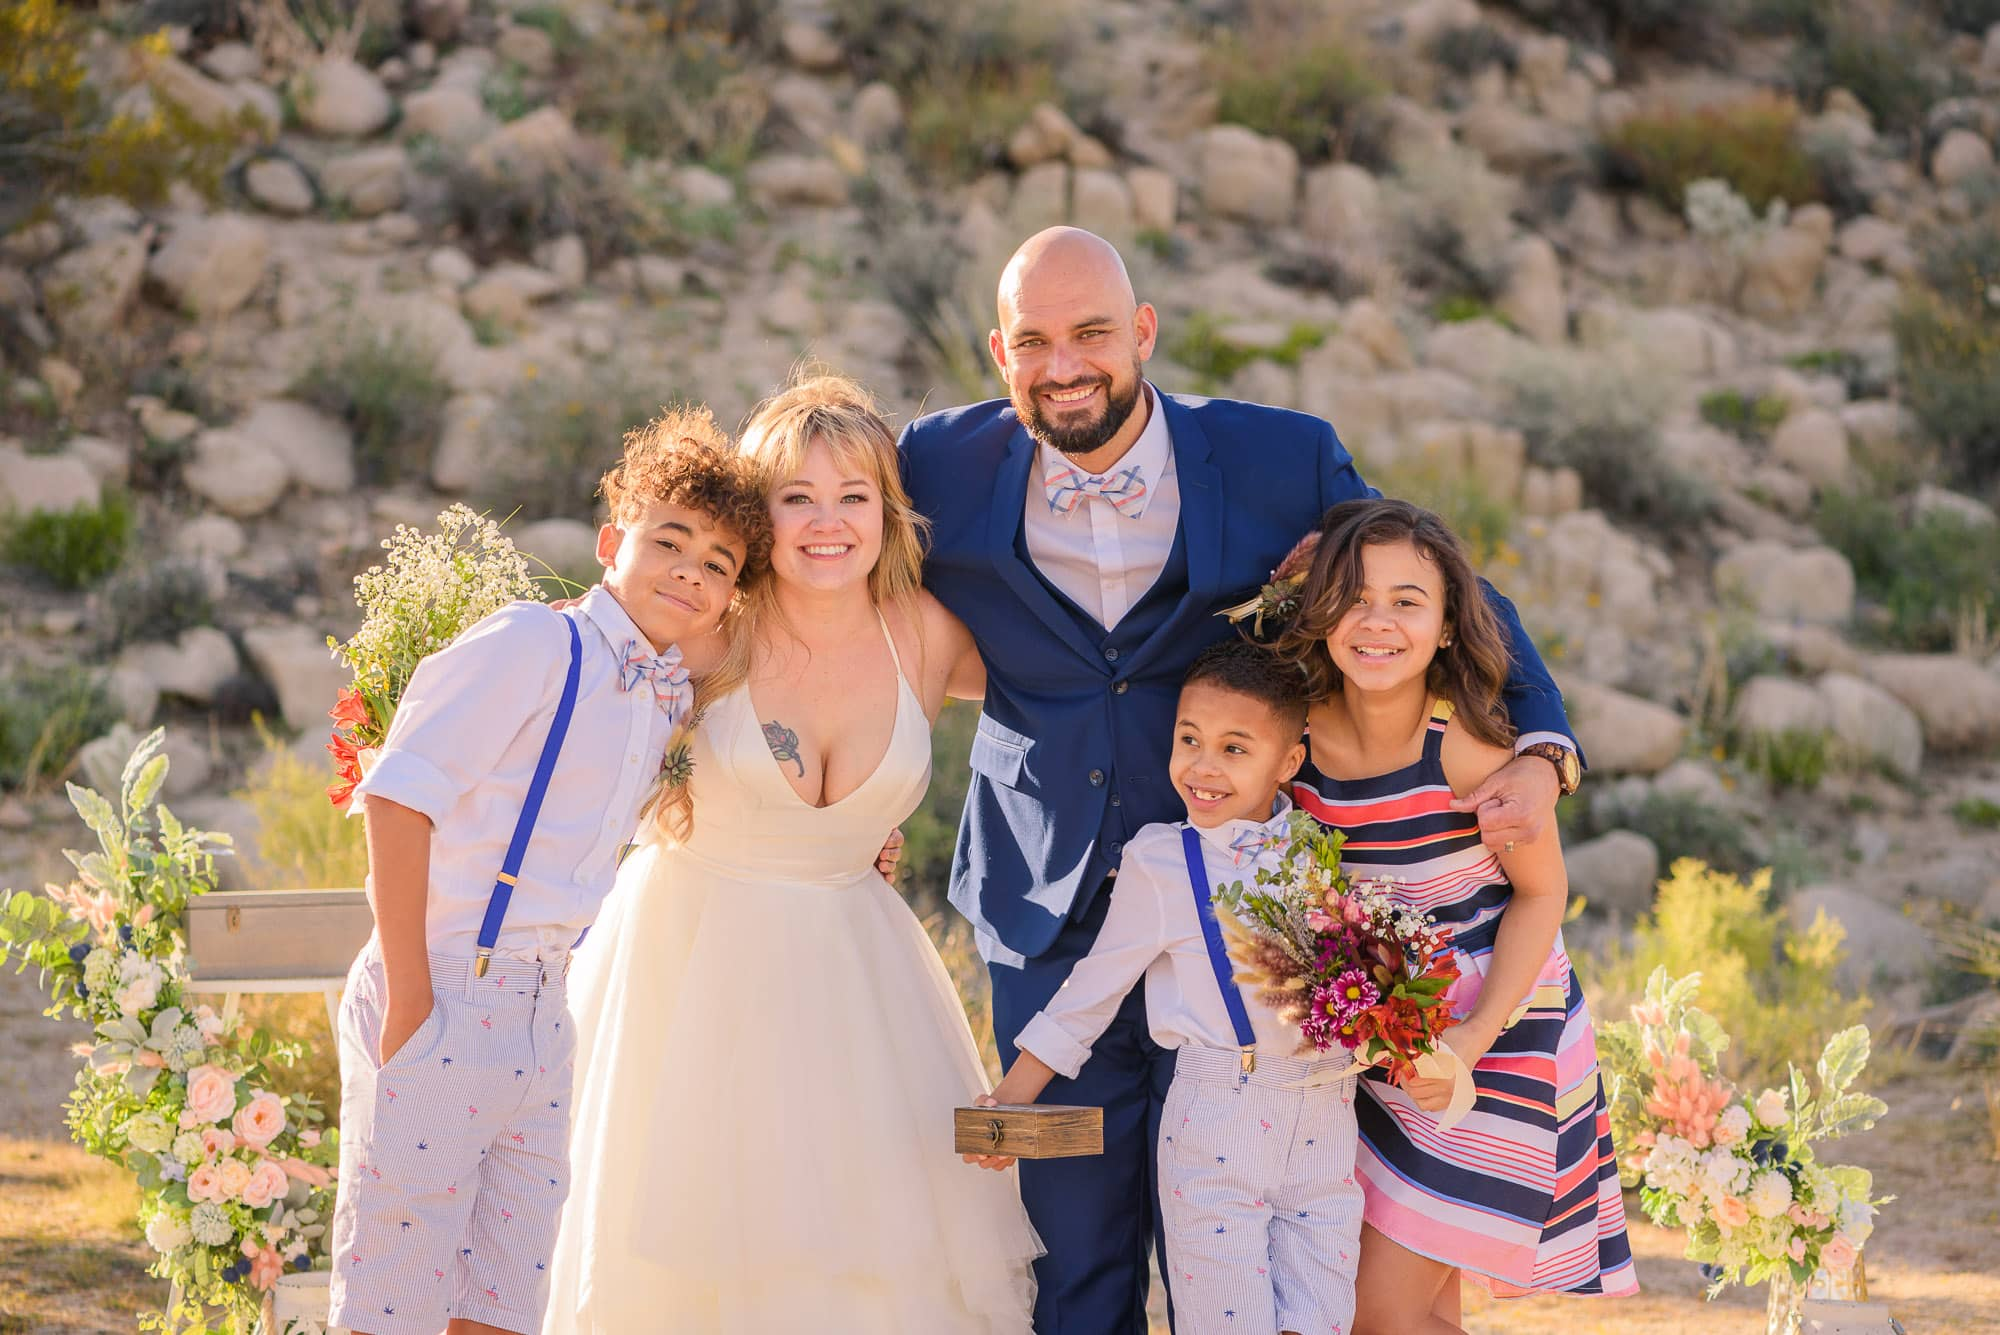 033_Alan_and_Heidi_Joshua_Tree_Spring_Elopement